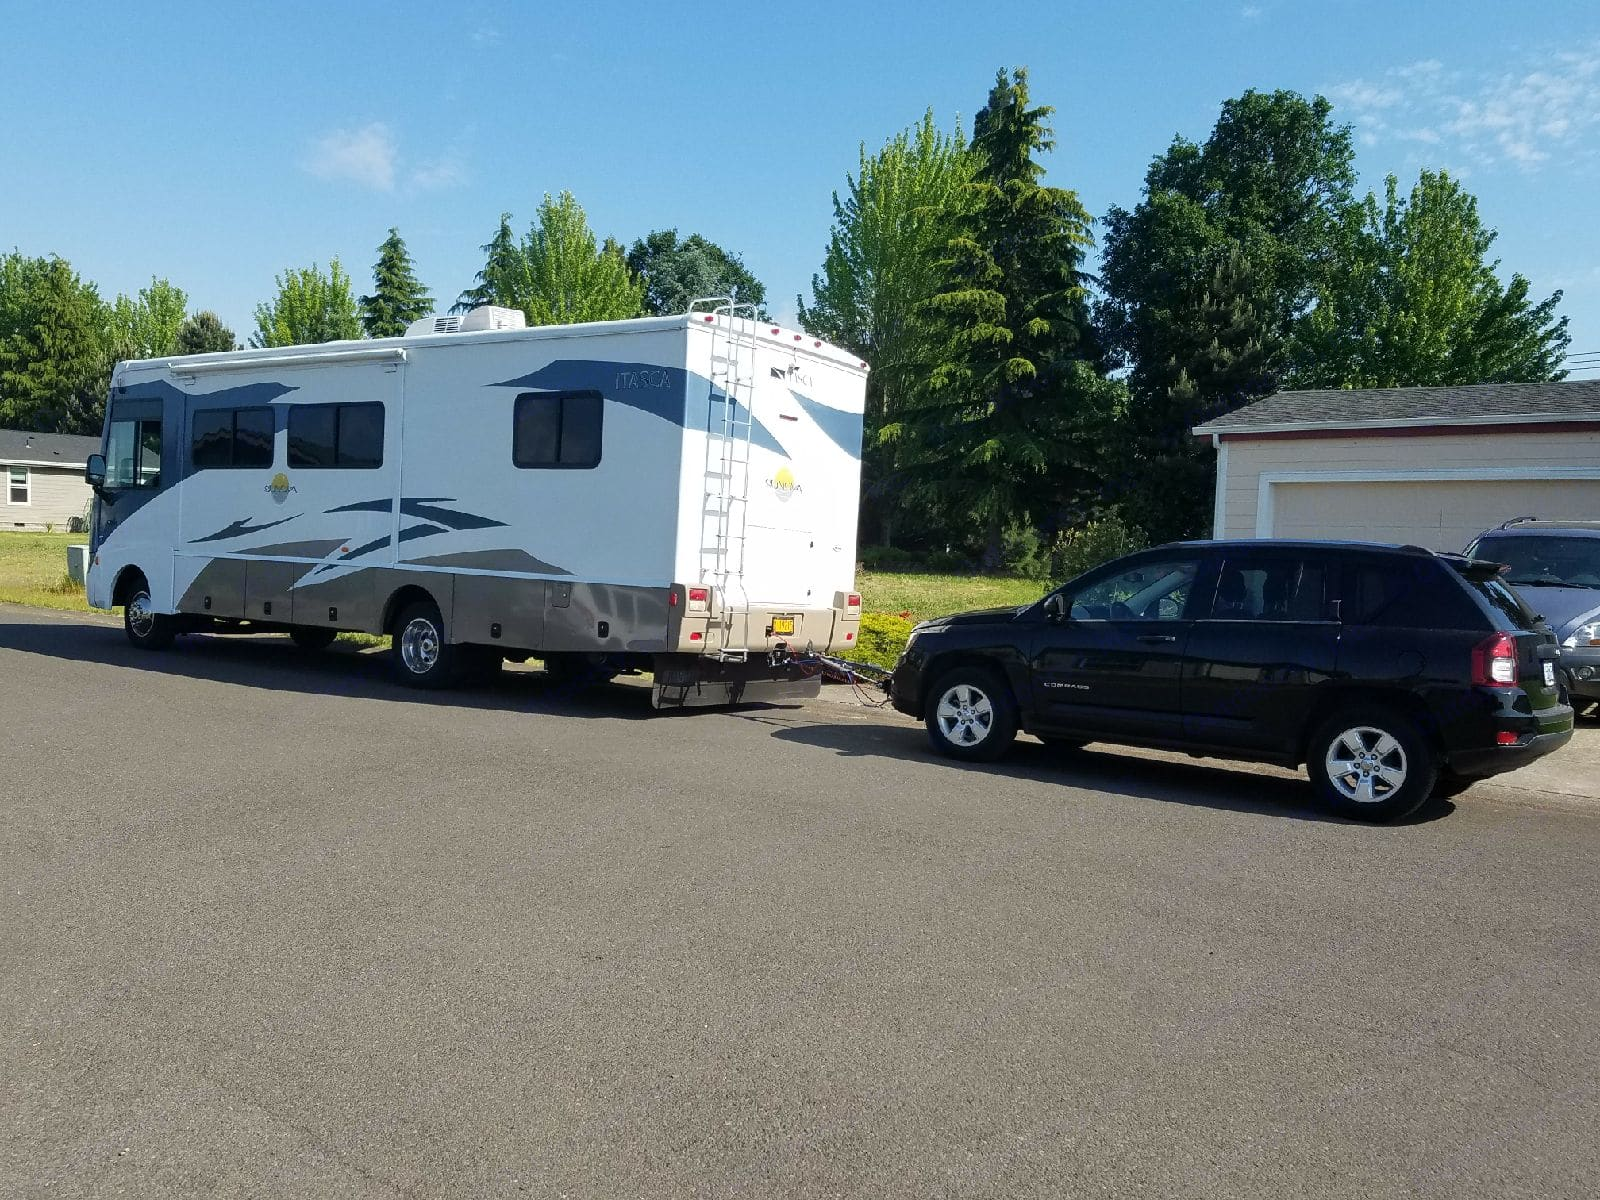 Also available to rent is a 2014 Jeep Compass to tow behind the RV.. Itasca Sunova 2008